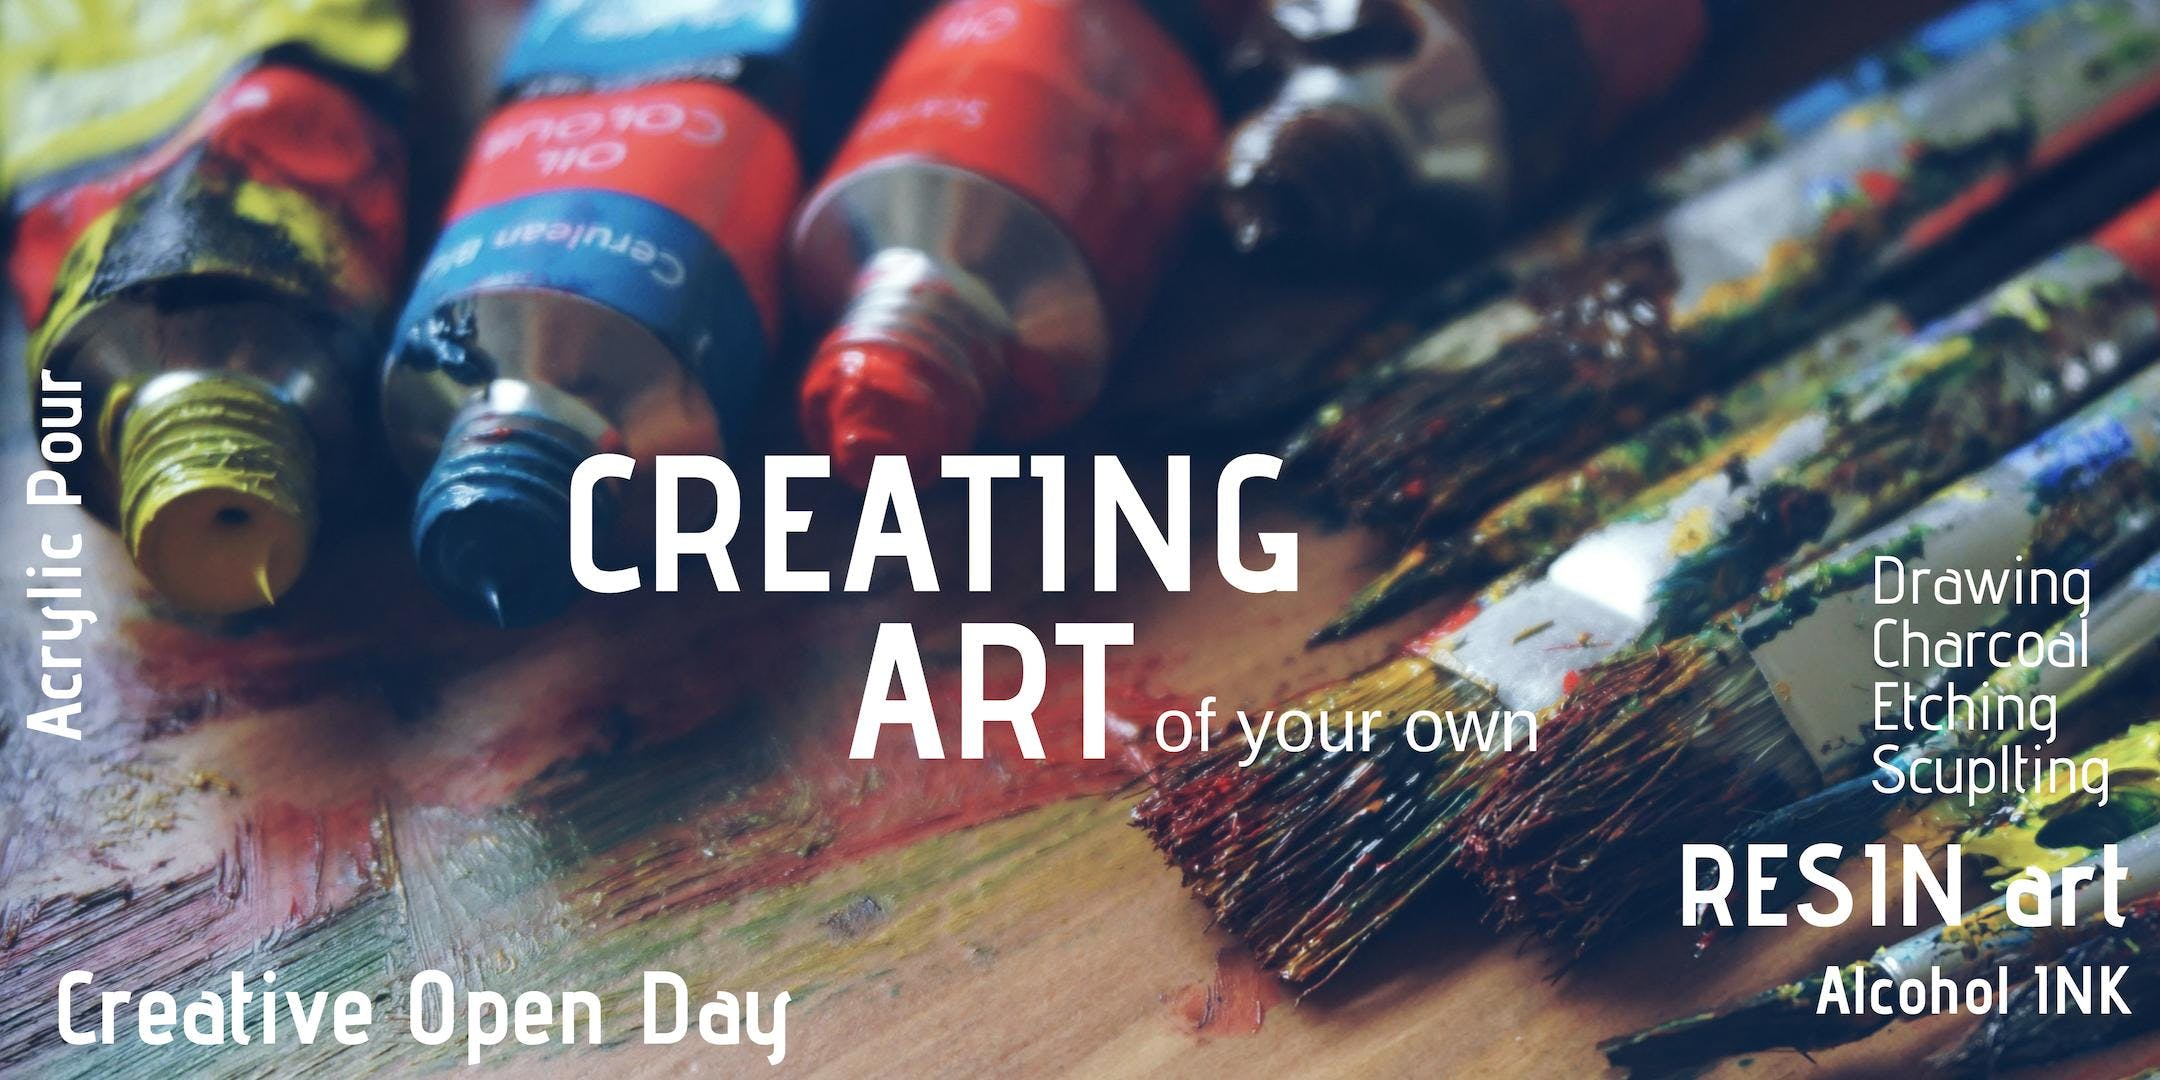 Creating Art - Sunday 20th Jan 3.00pm